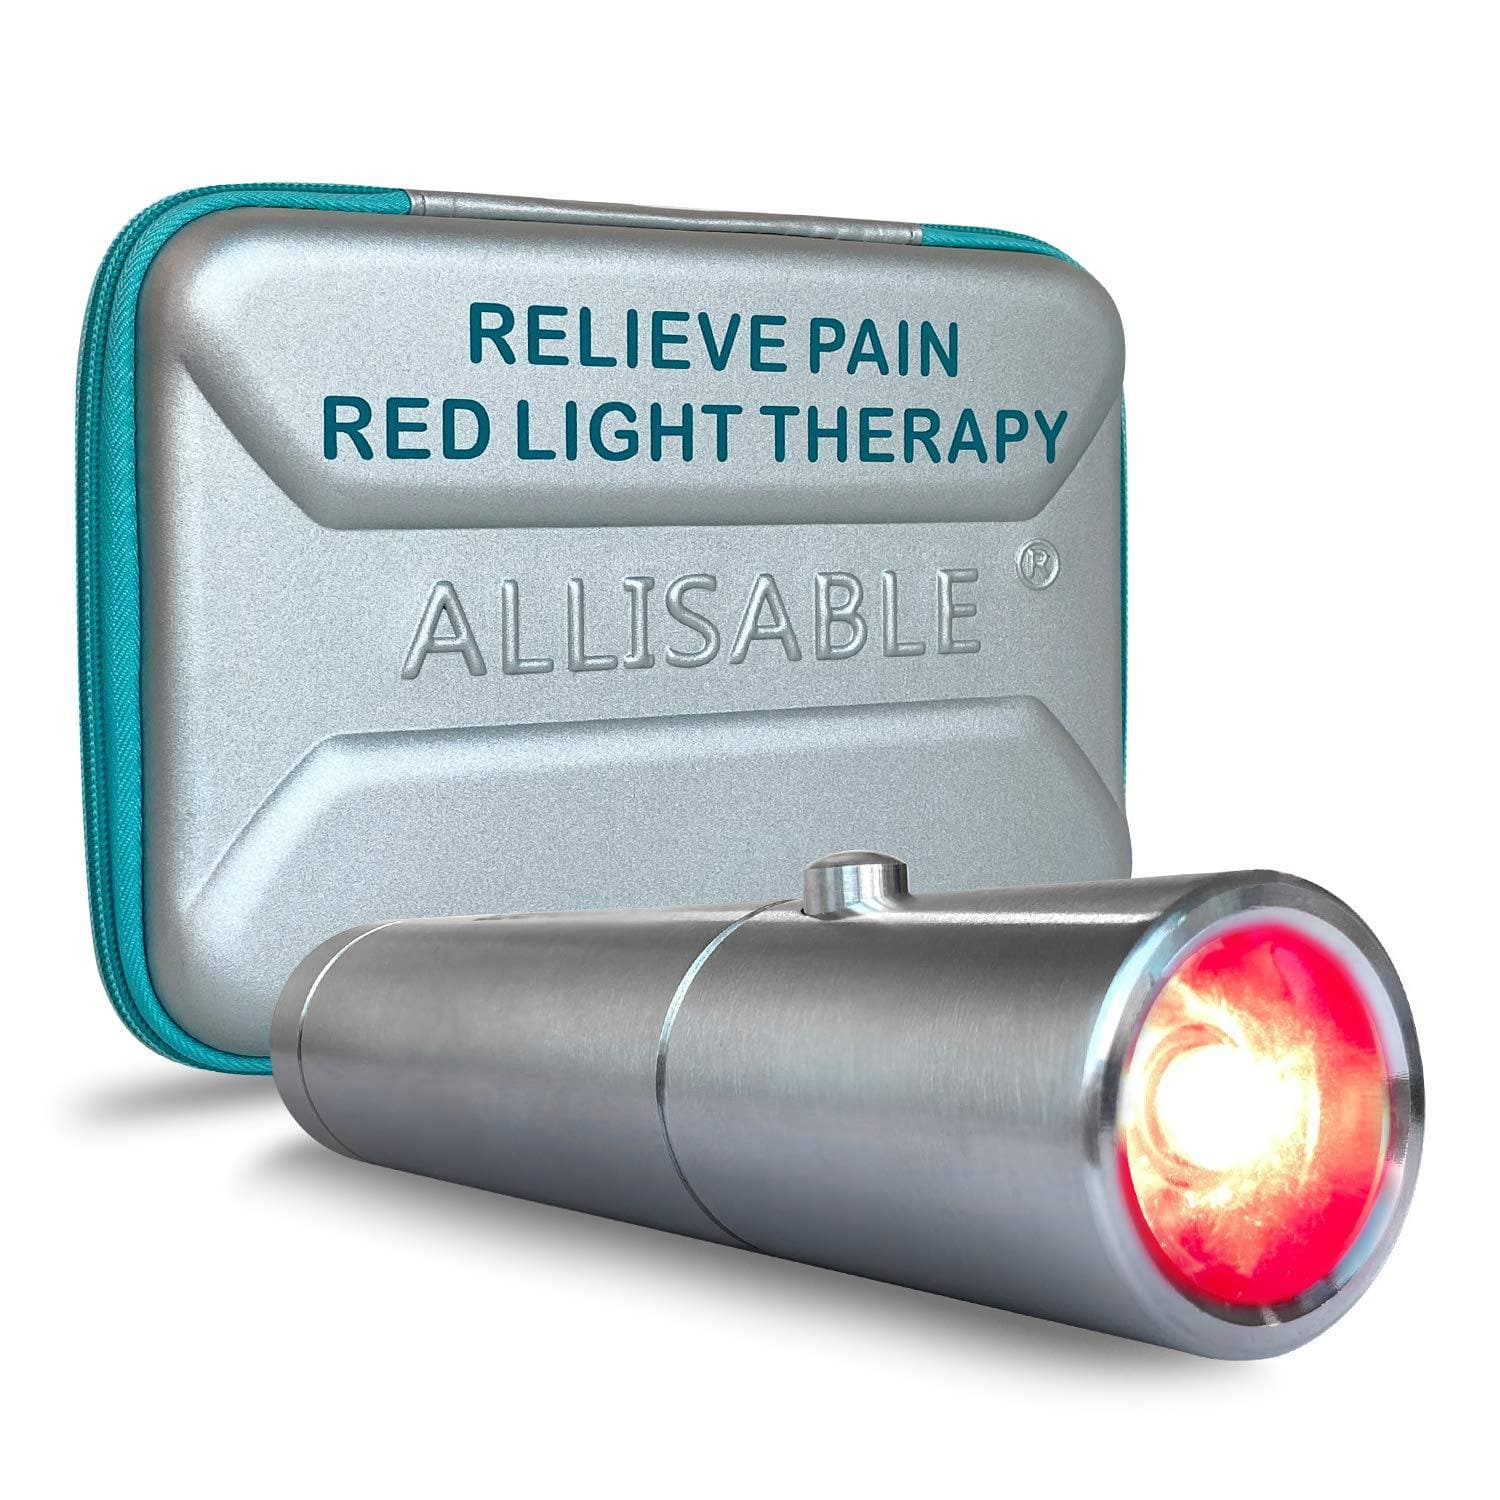 Red Light Therapy Device, Allisable® Joint and Muscle Pain Relief